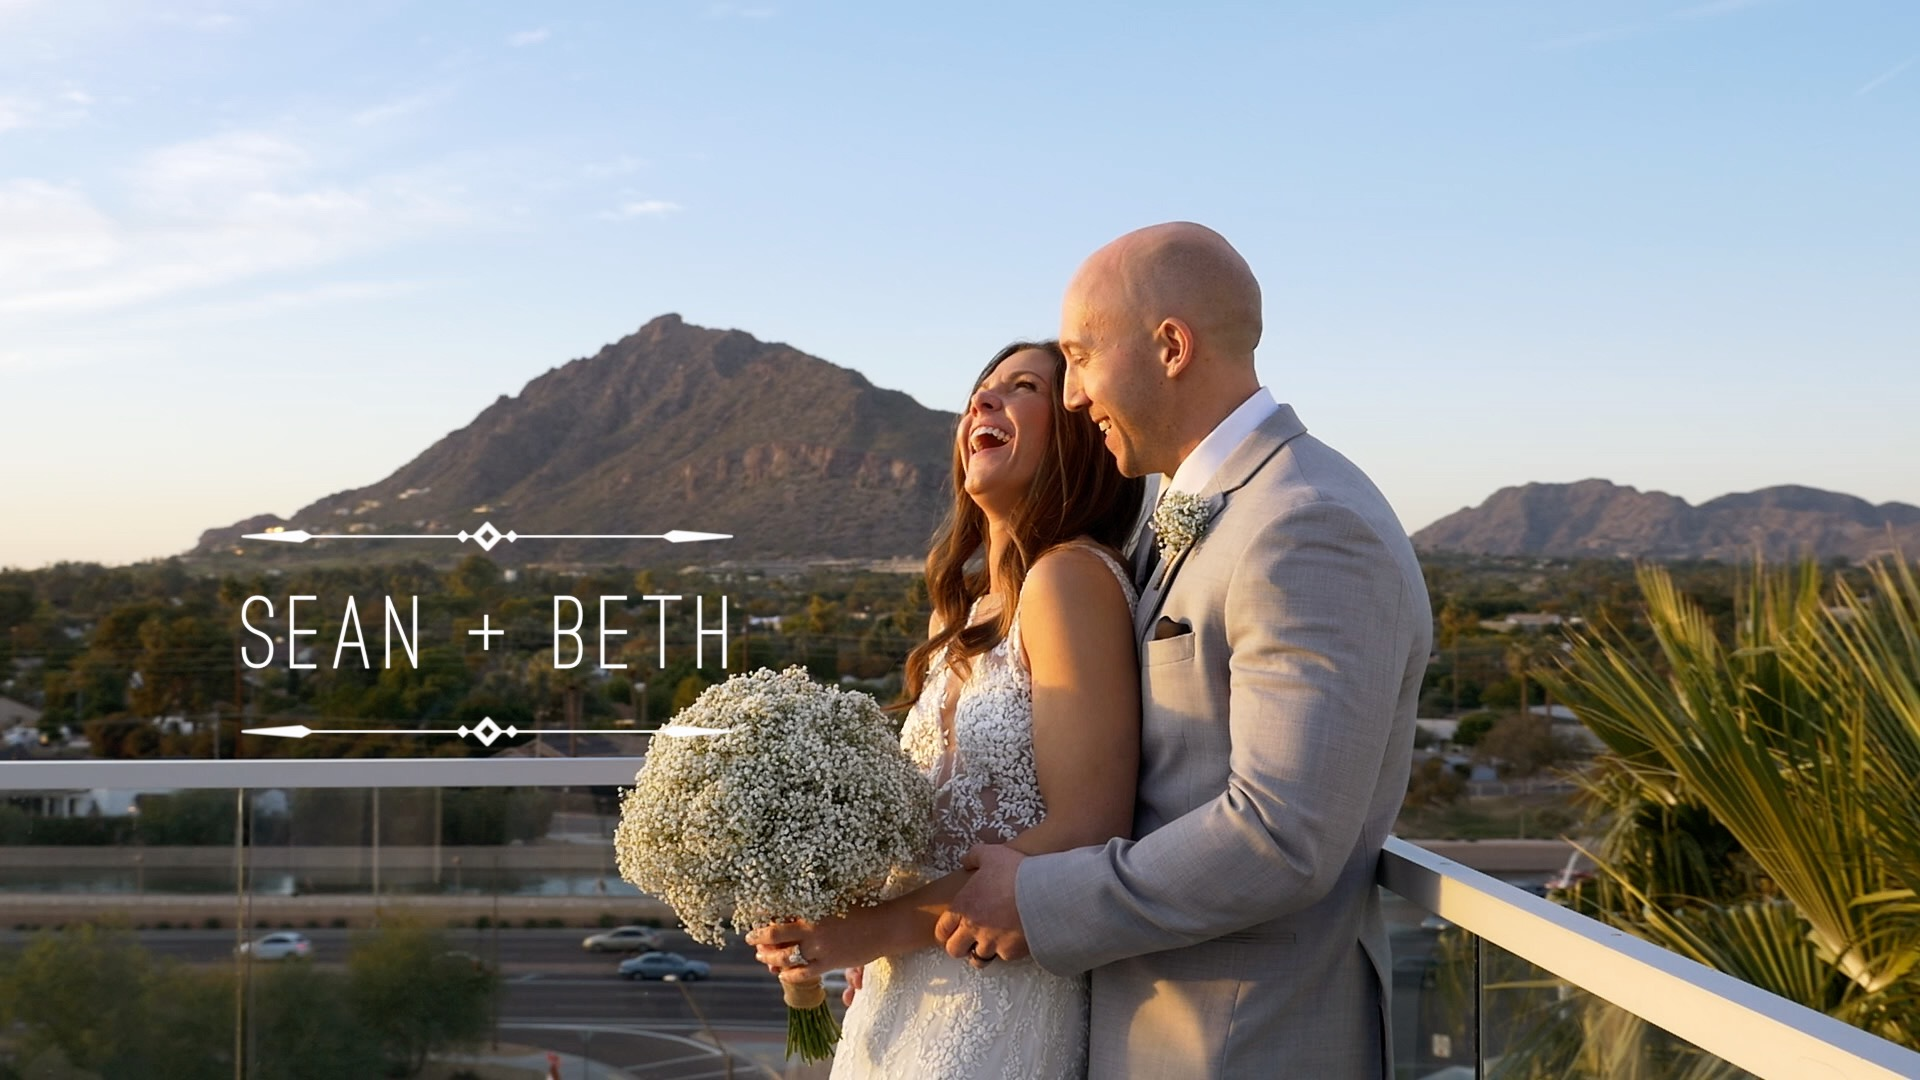 Sean  + Beth  | Scottsdale, Arizona | Hotel Valley Ho